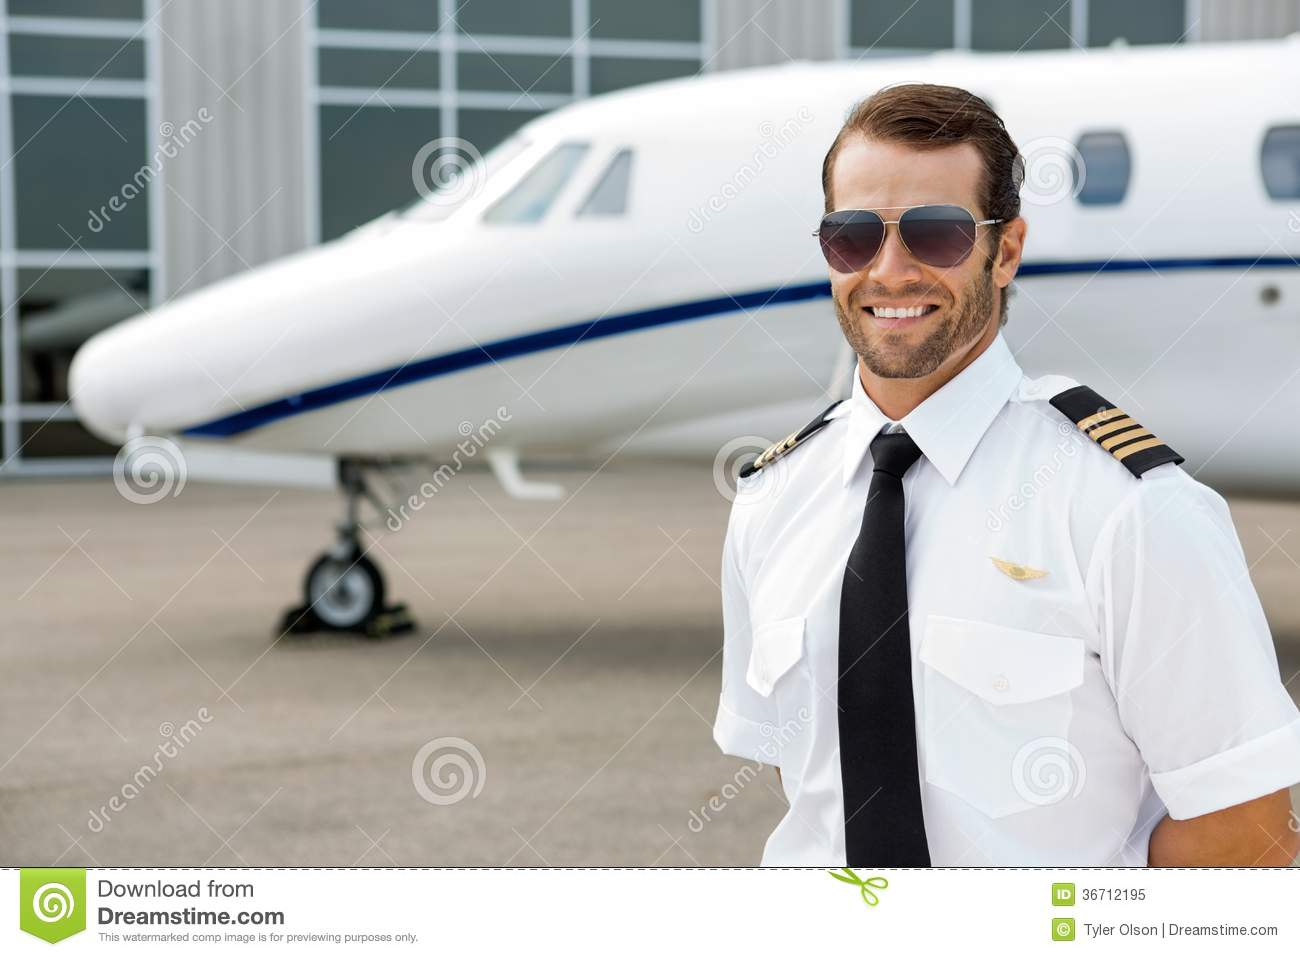 How To Be More Confident In Bed Confident Pilot Smiling Royalty Free Stock Photo Image